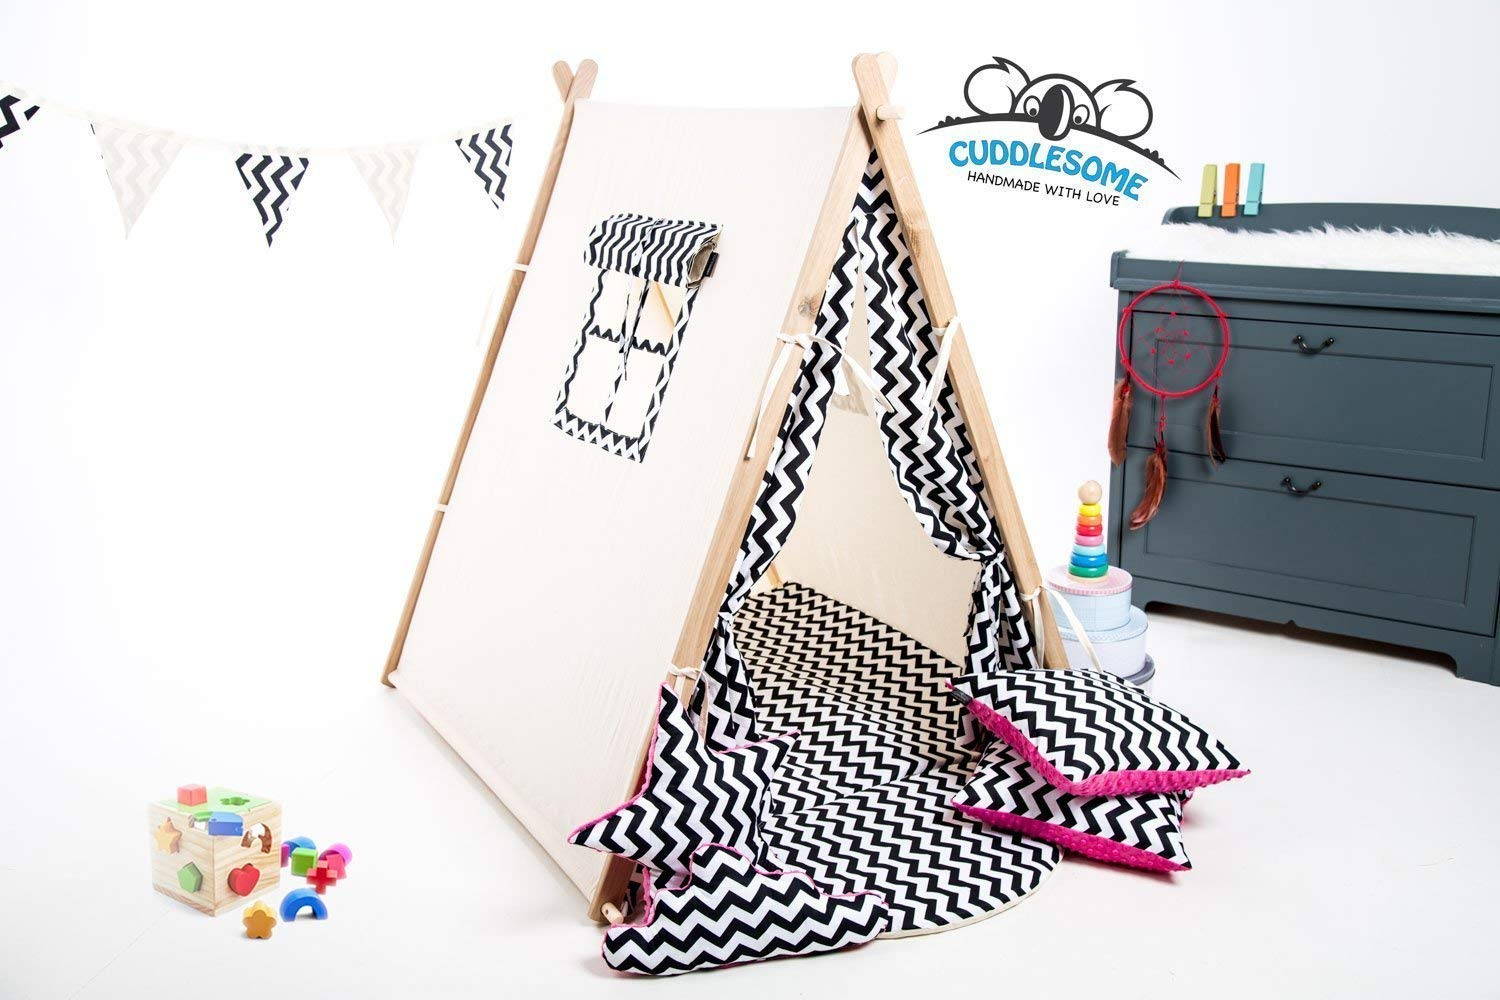 Zigzag teepee tent for children by Cuddlesome